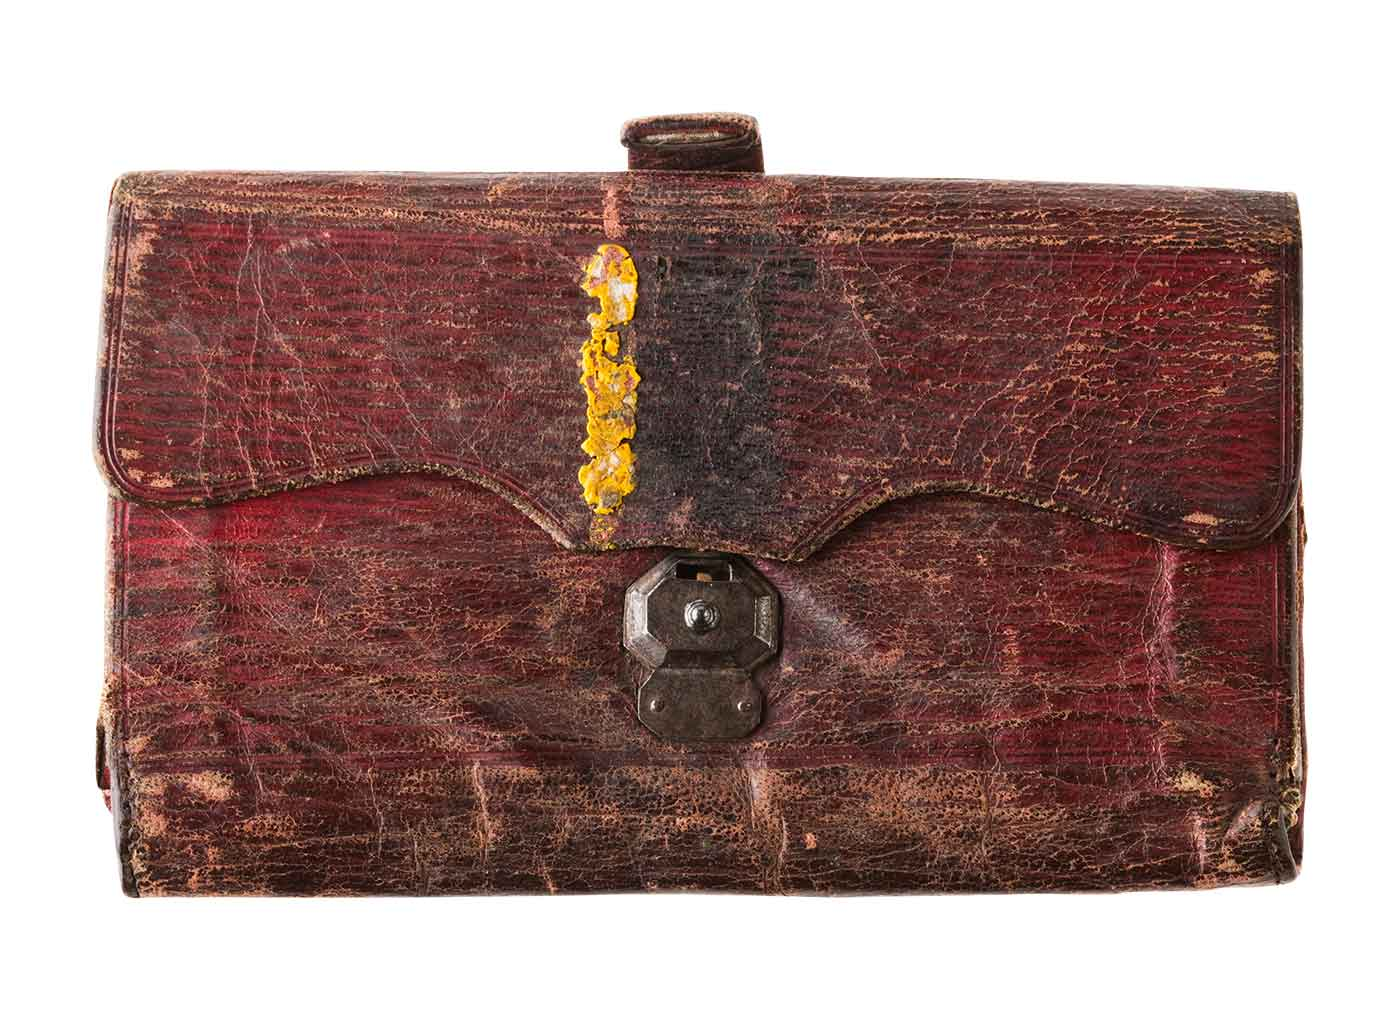 Old weathered burgundy-coloured leather wallet - click to view larger image